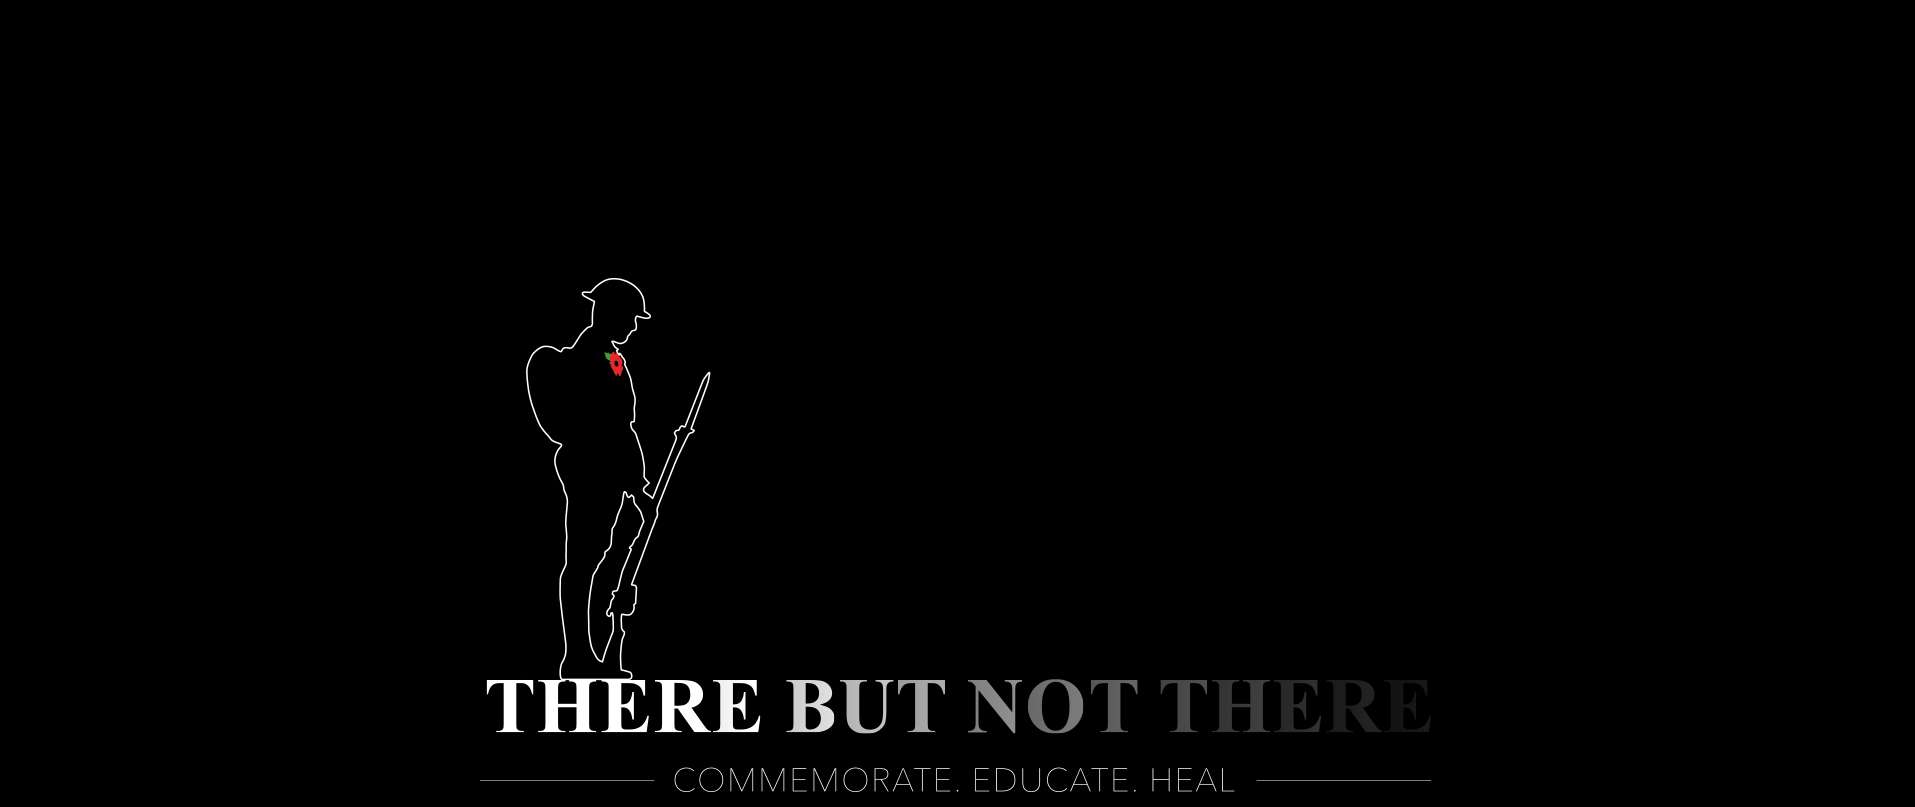 There But Not There: Commemorate. Educate. Heal